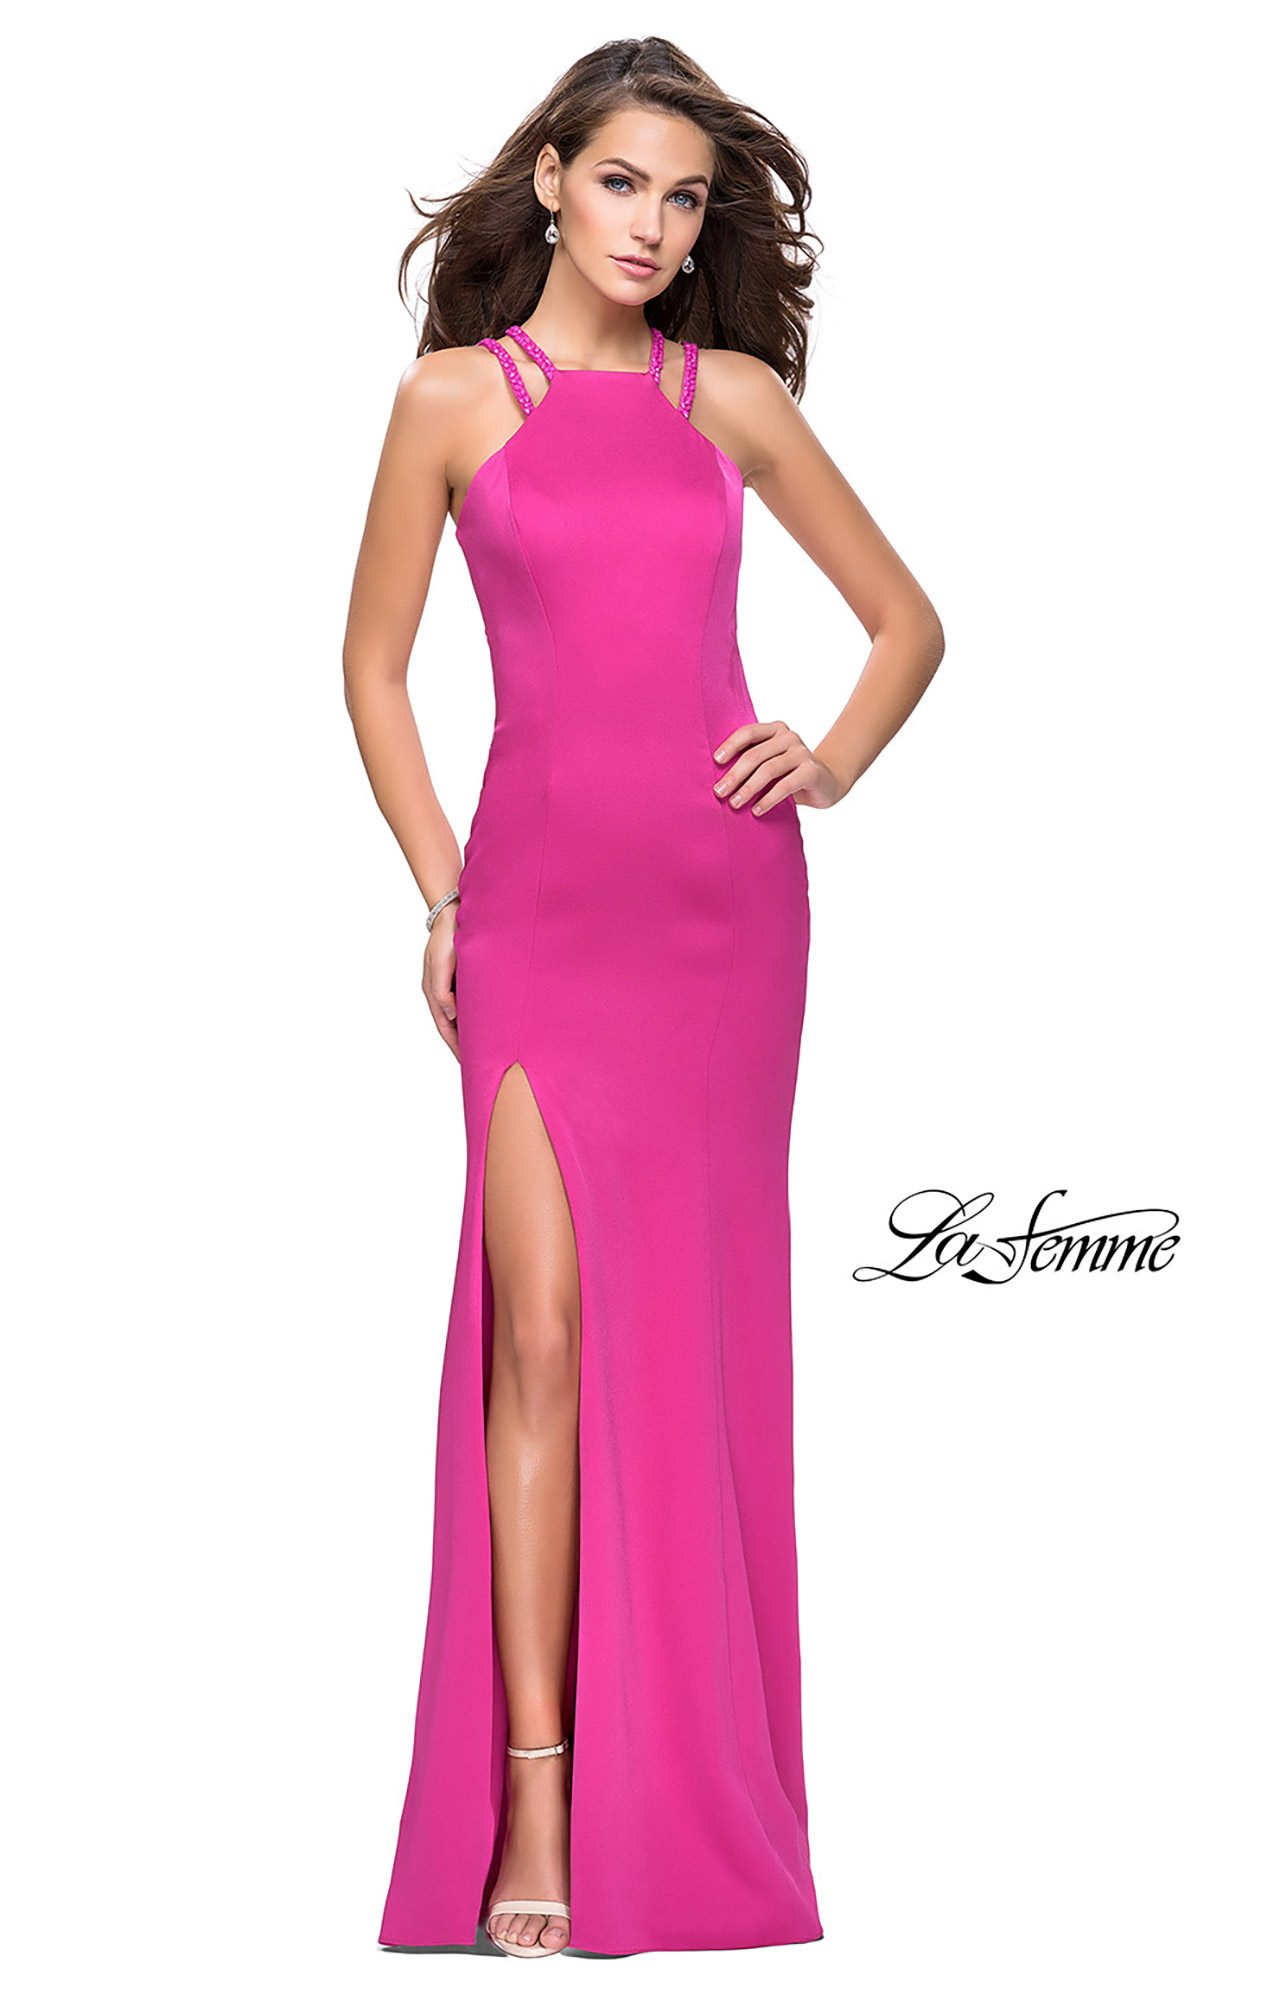 La Femme 25540 - Long Fitted Satin Prom Dress